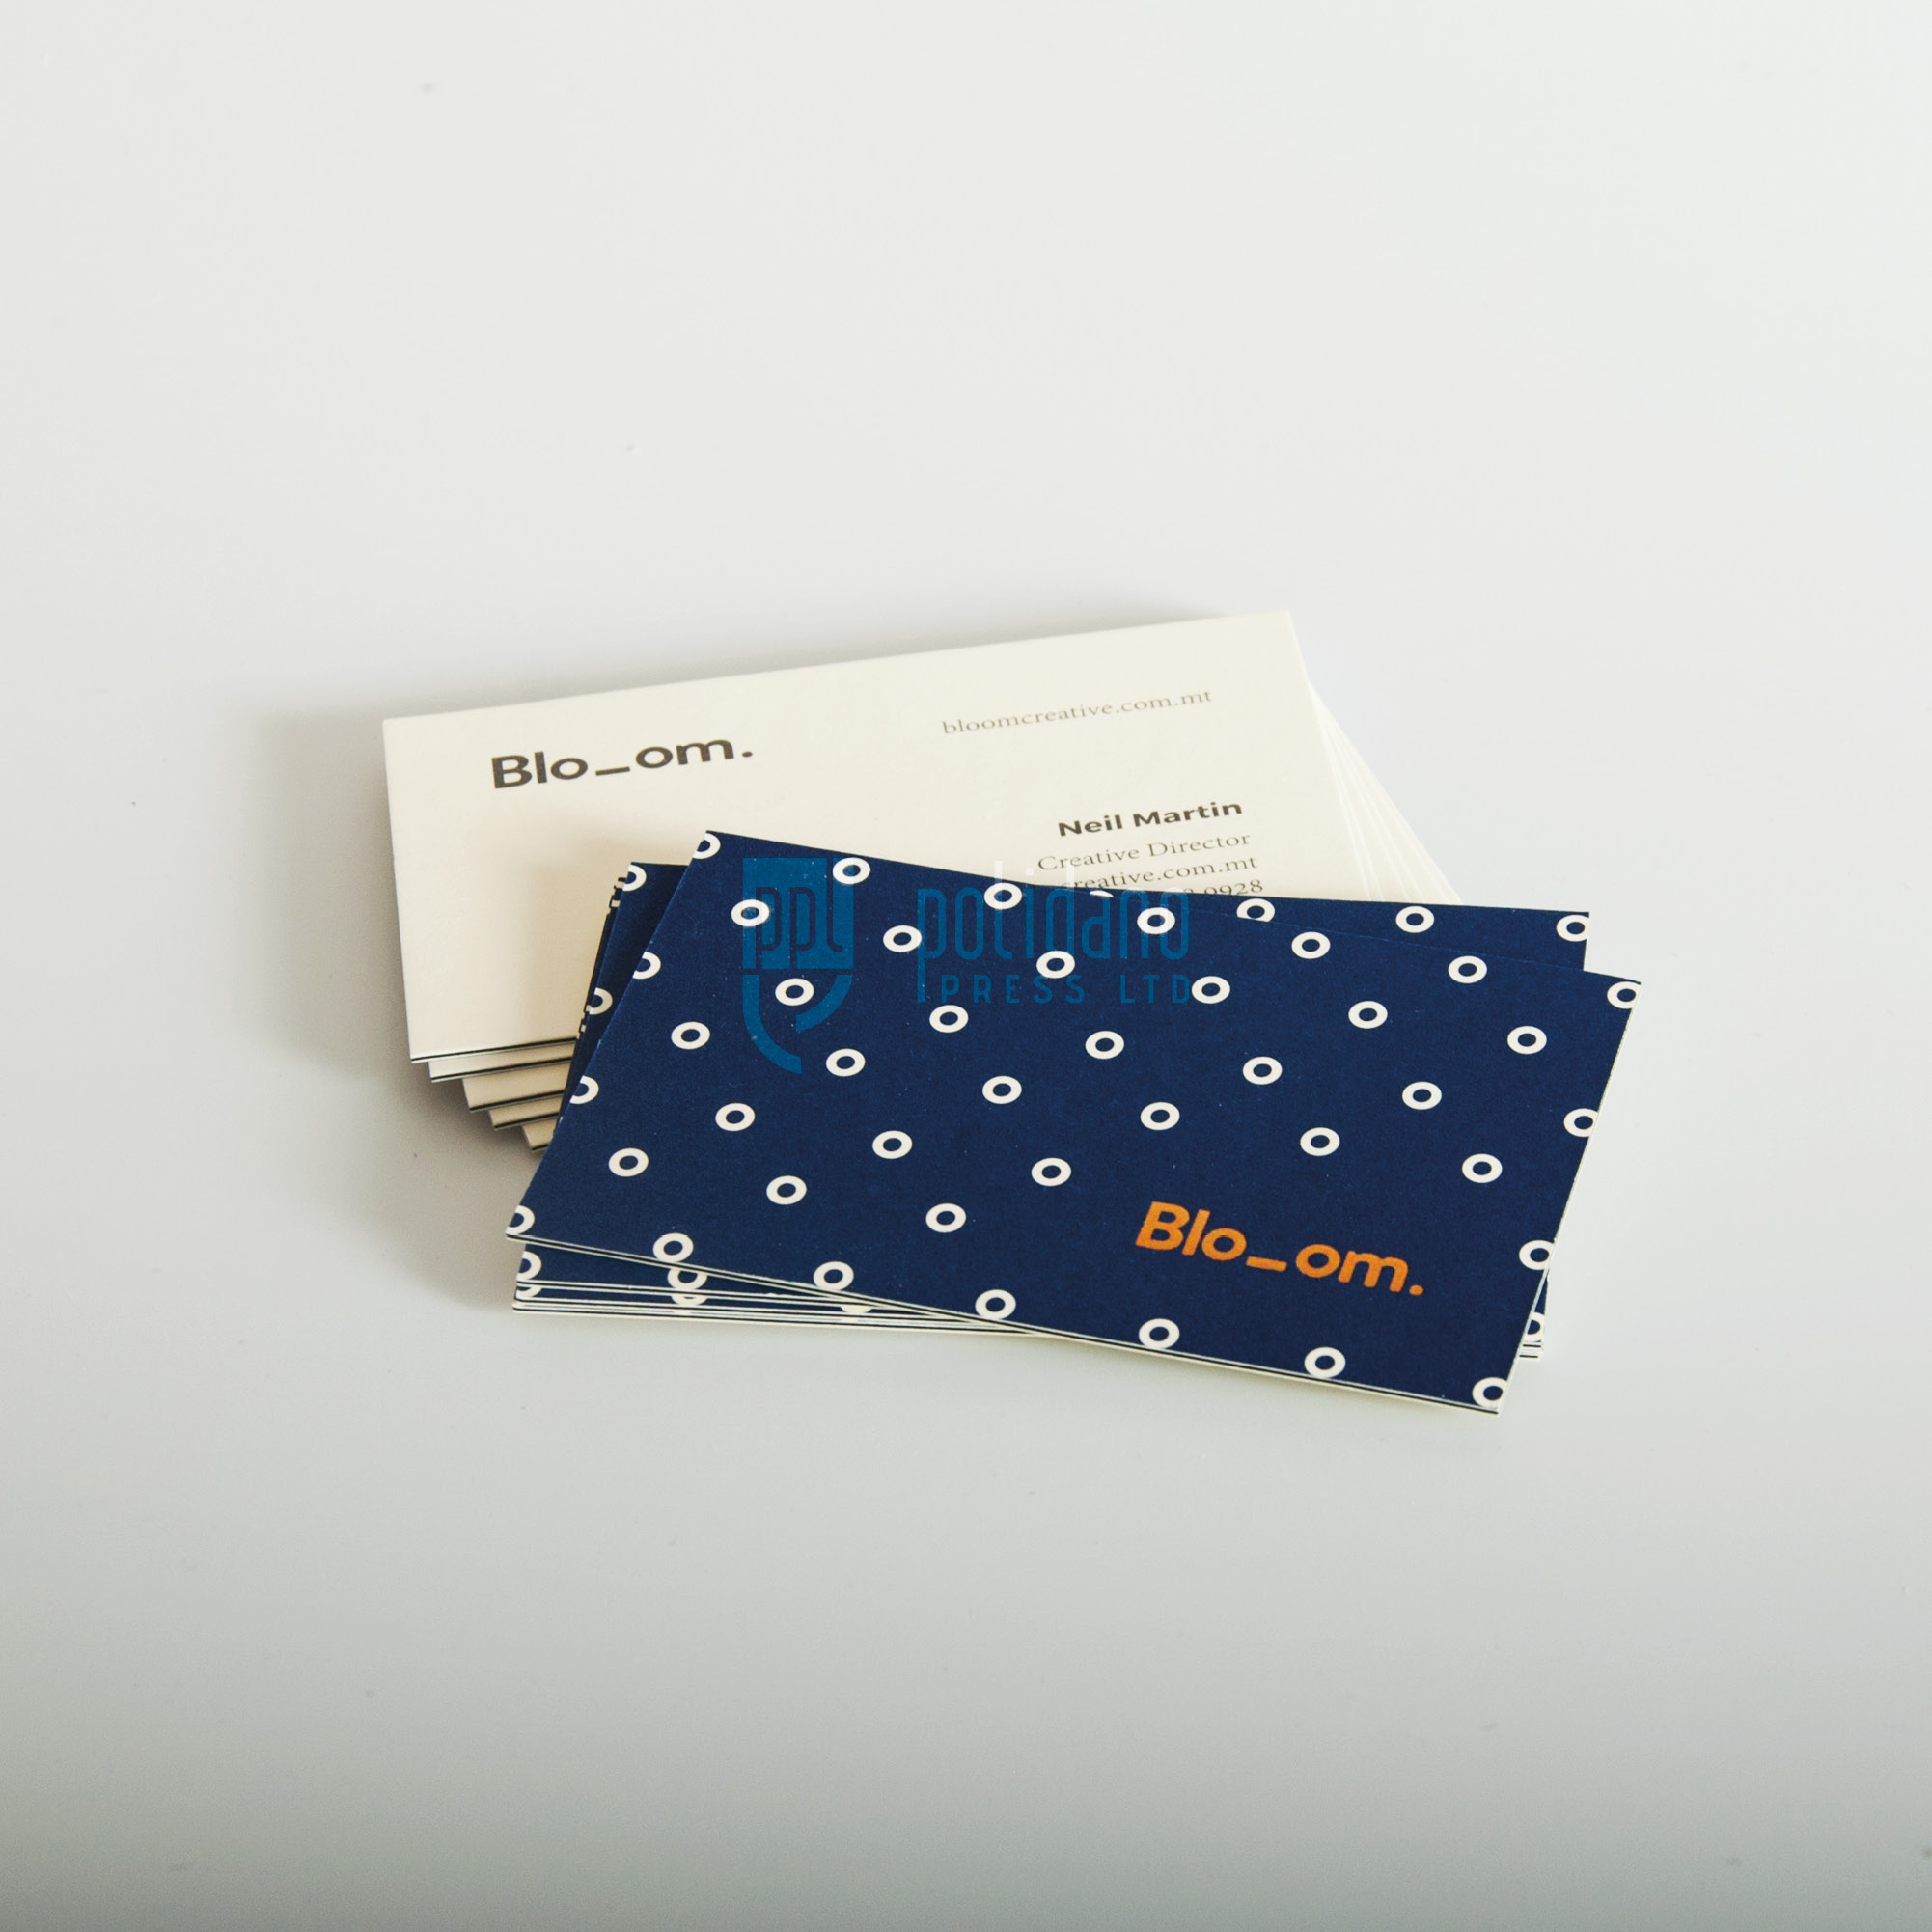 Bloom business cards - 3 ply - foil